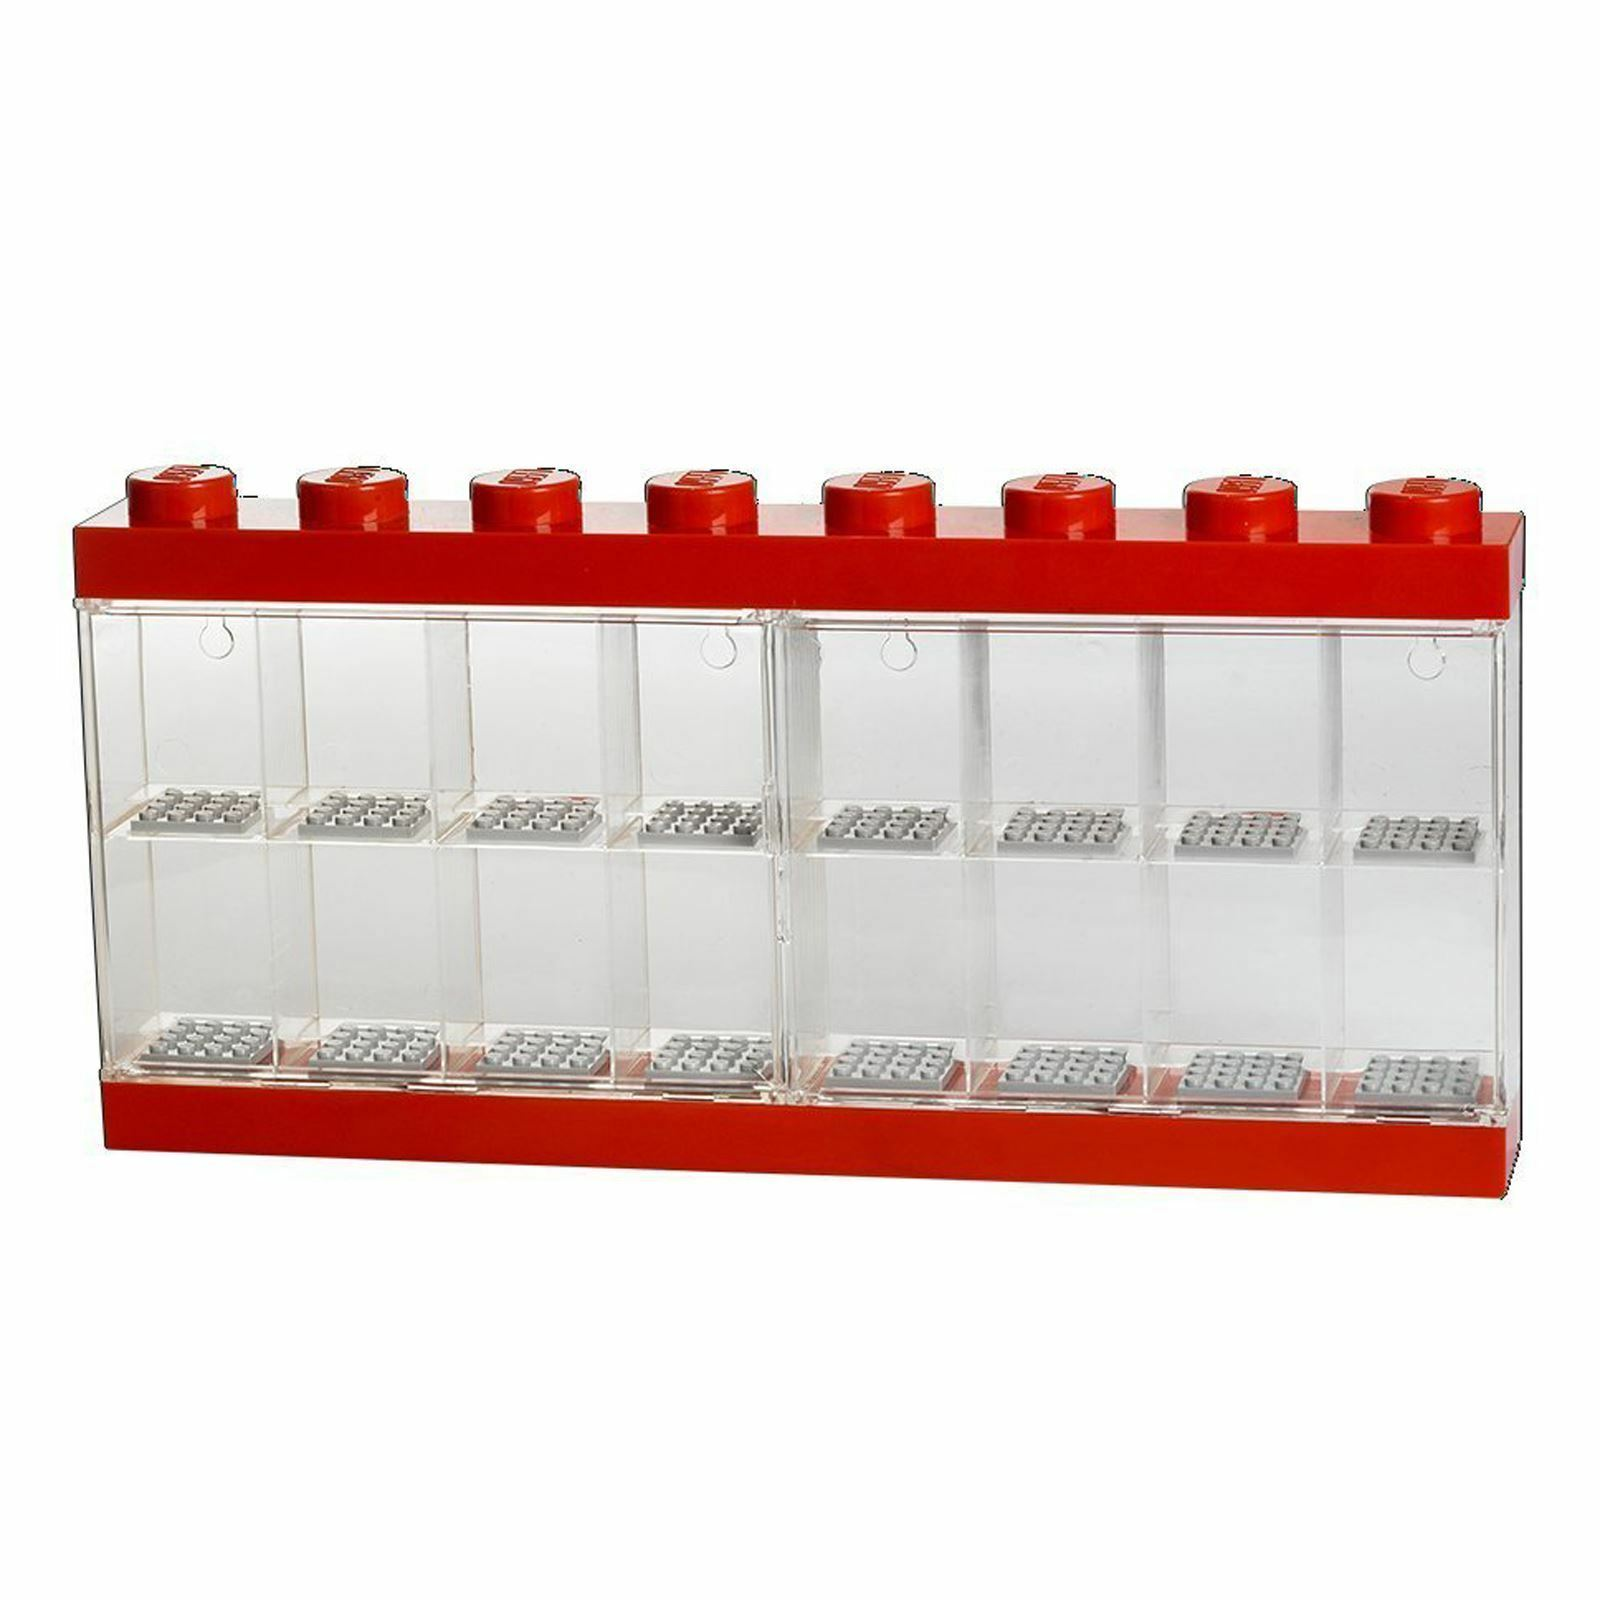 LEGO MINIFIGURE RED DISPLAY CASE LARGE